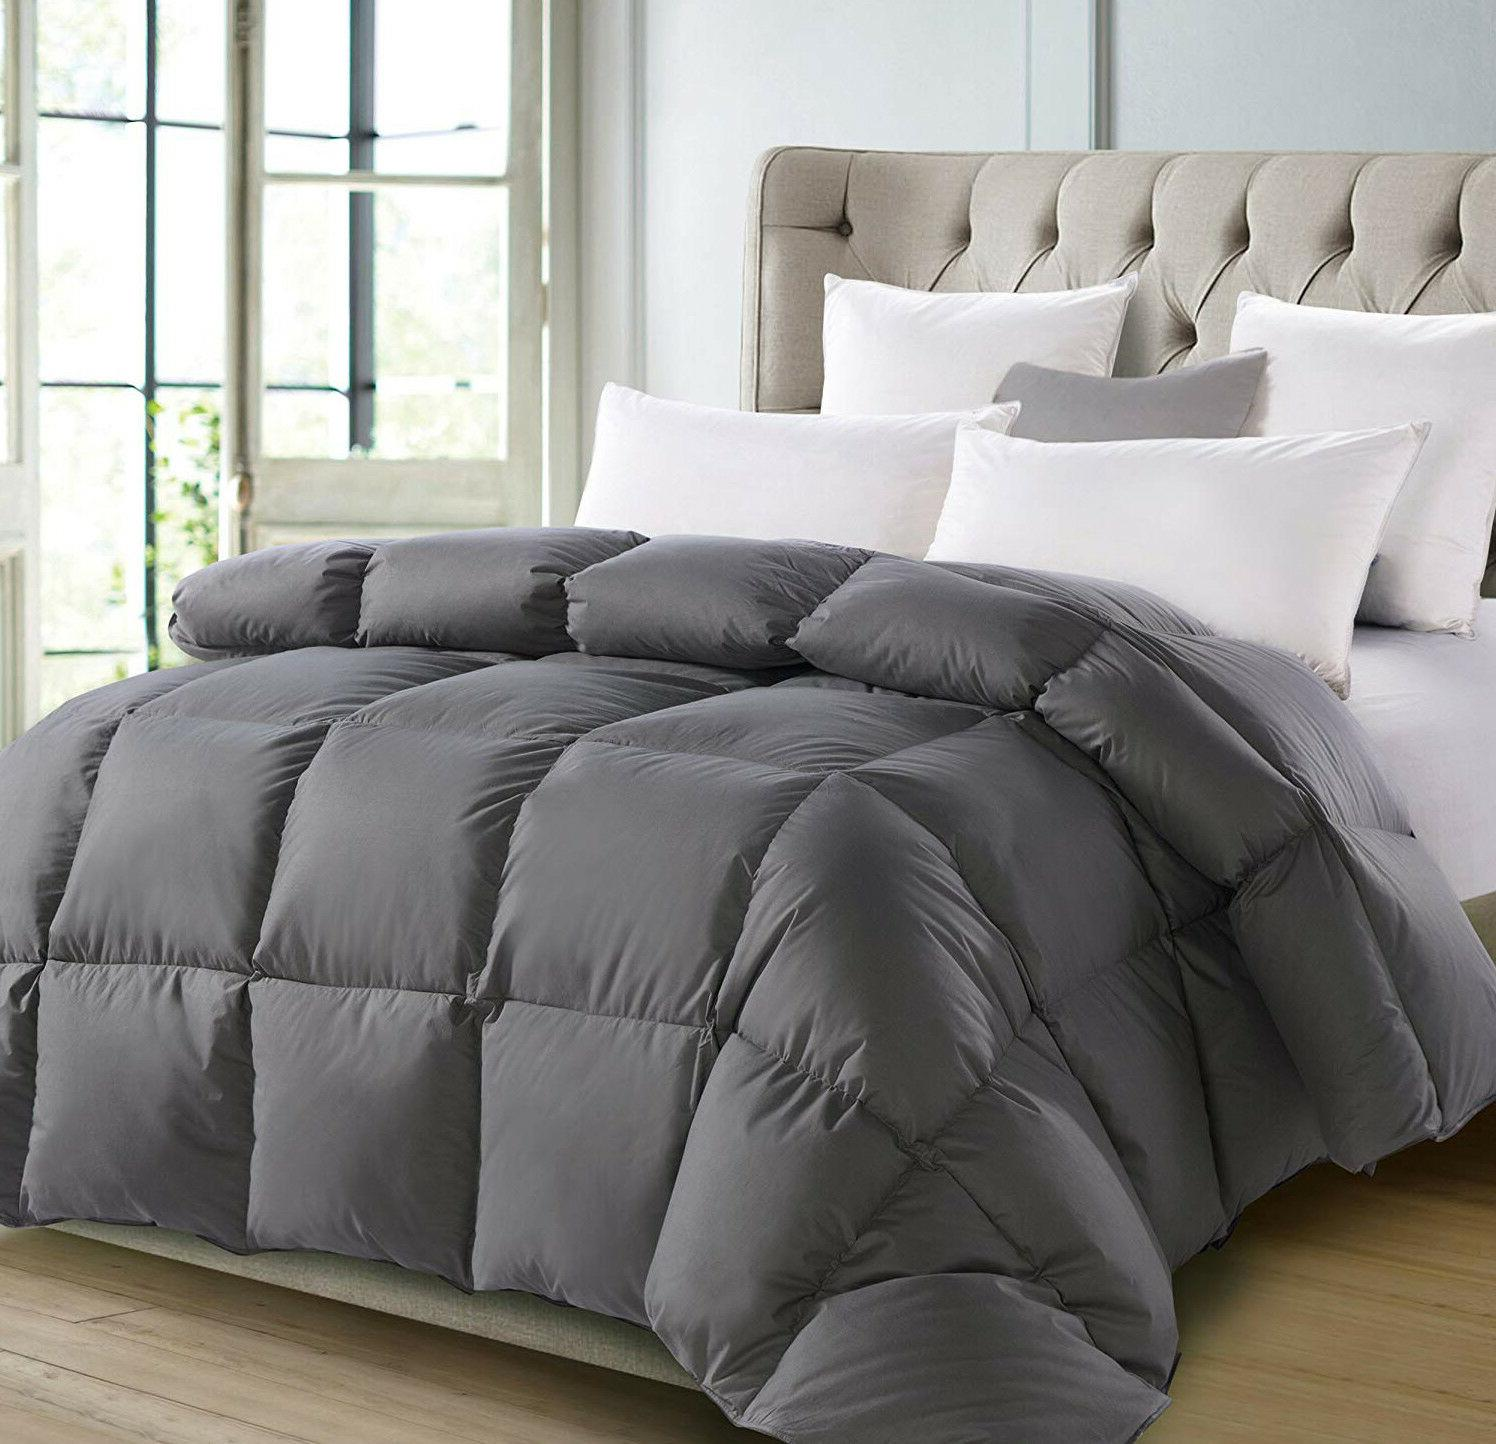 Deluxe TC Down Comforter Cotton, Down-like